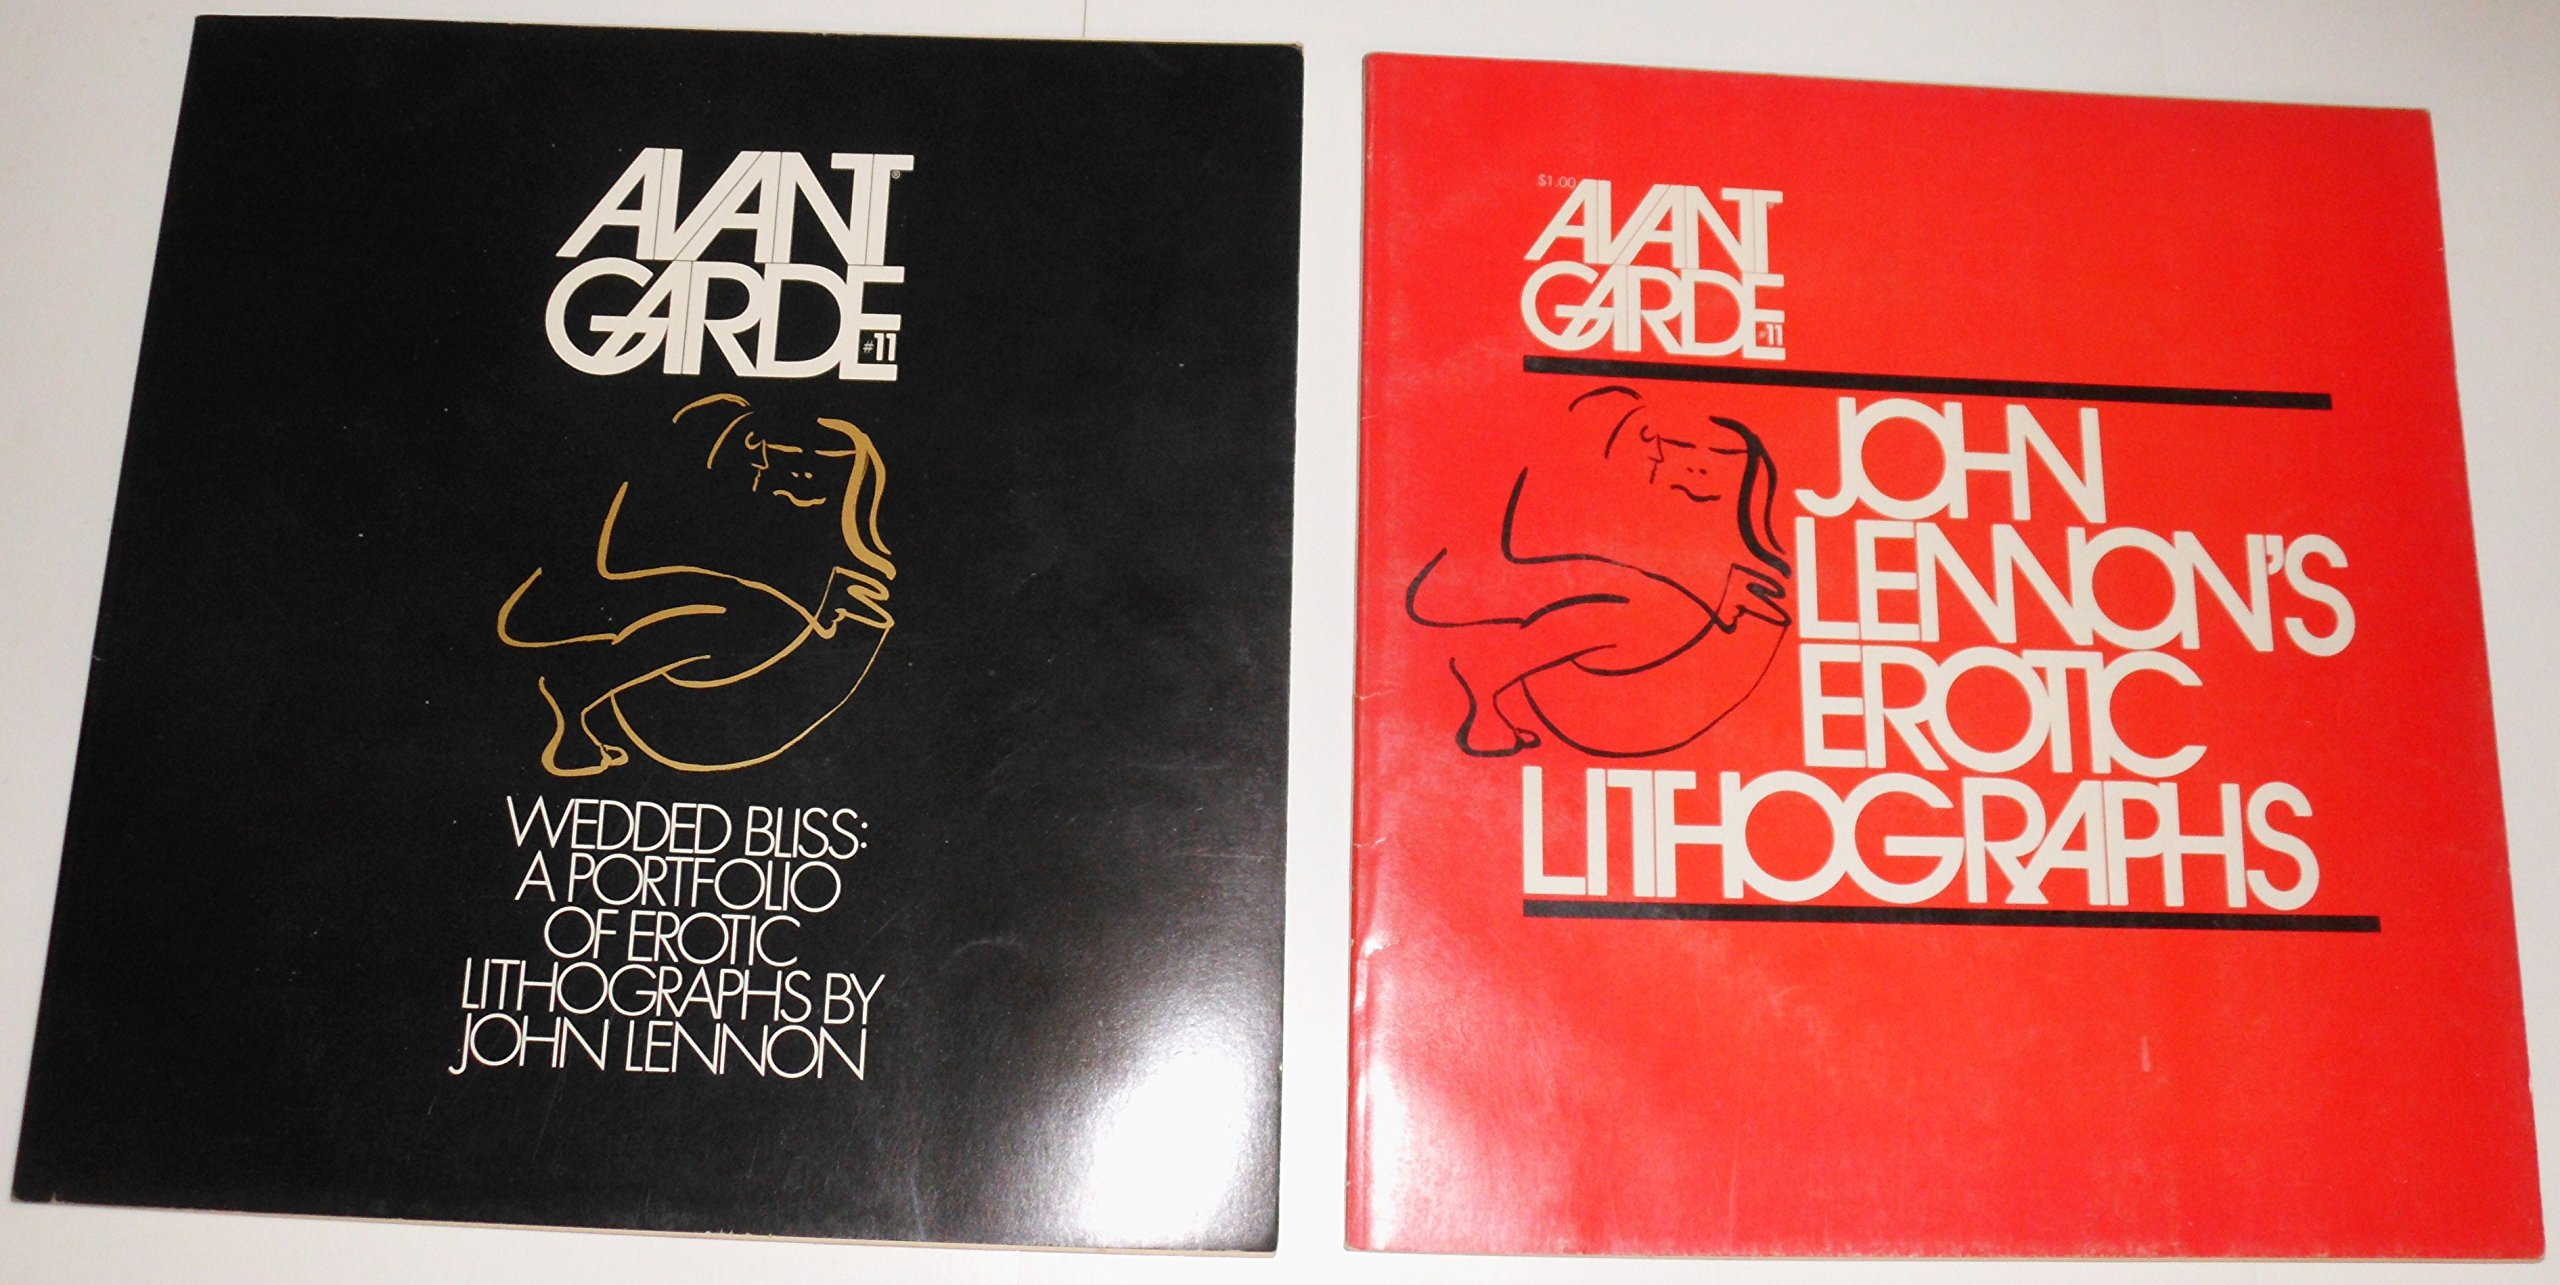 Avant Garde #11 [Periodical]. Wedded Bliss: A Portfolio of Erotic Lithographs By John Lennon